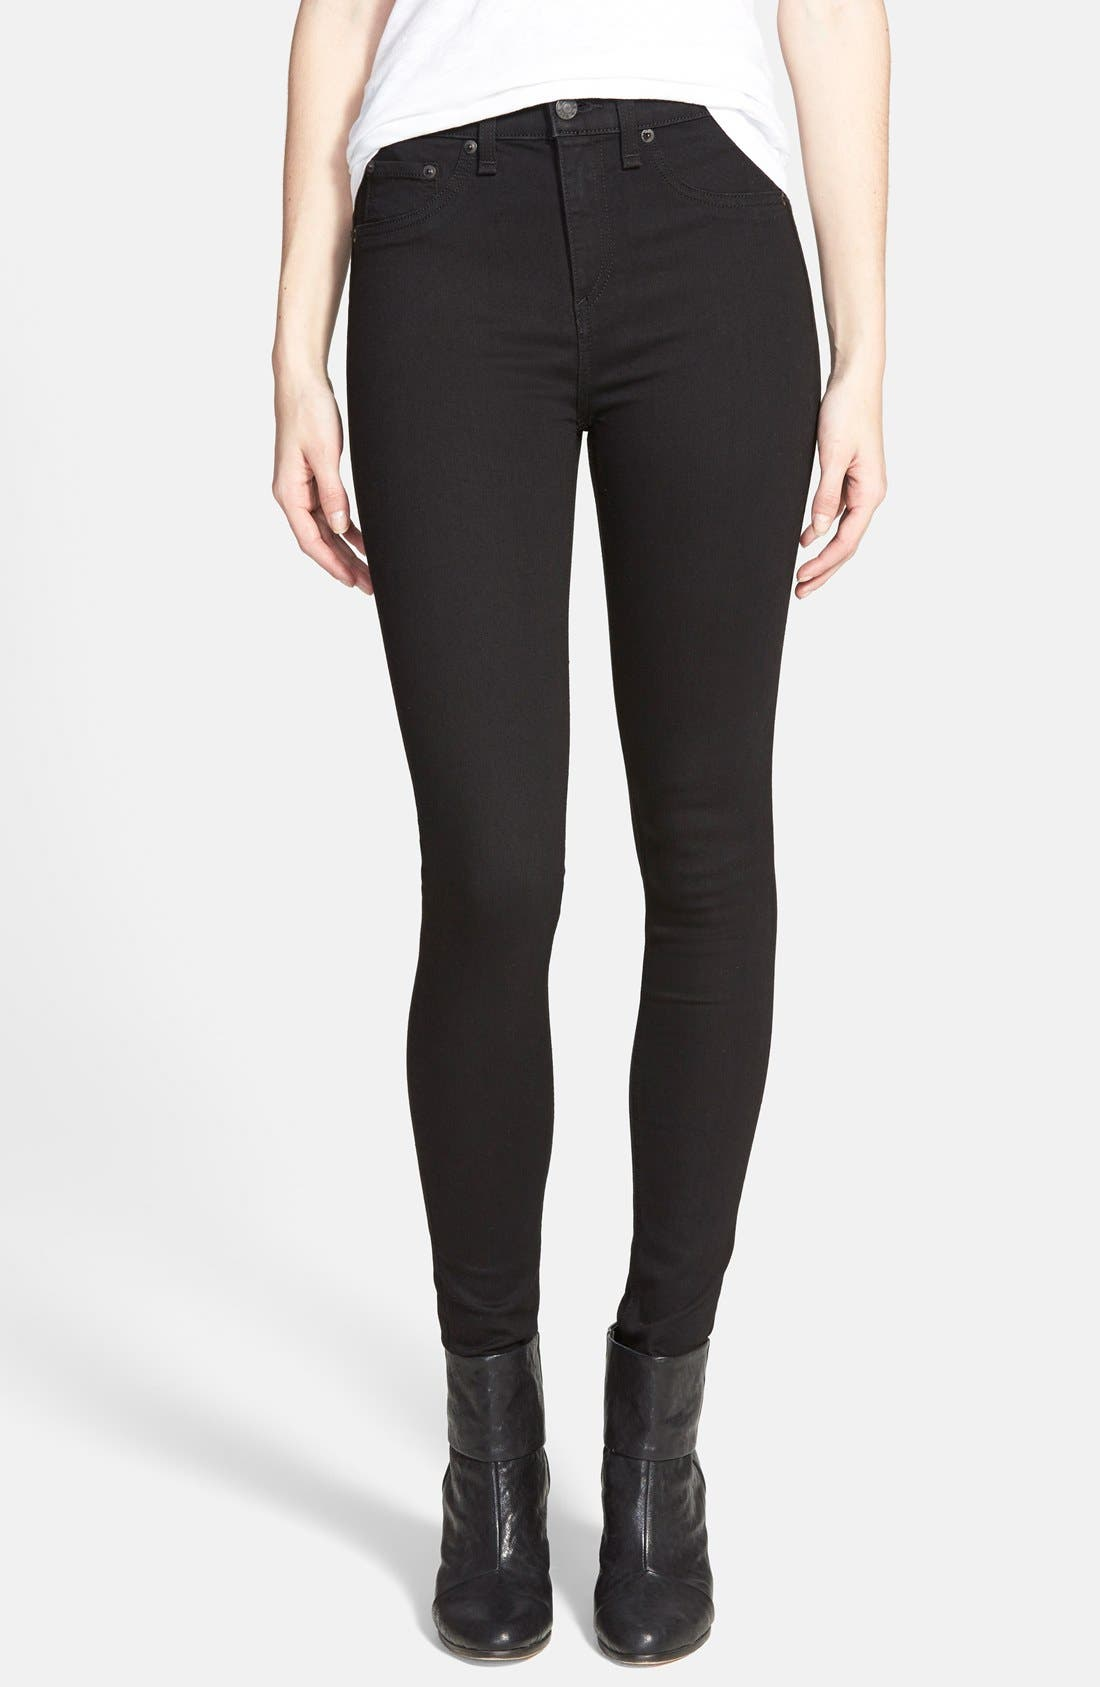 Main Image - rag & bone/JEAN High Waist Leggings (Black)